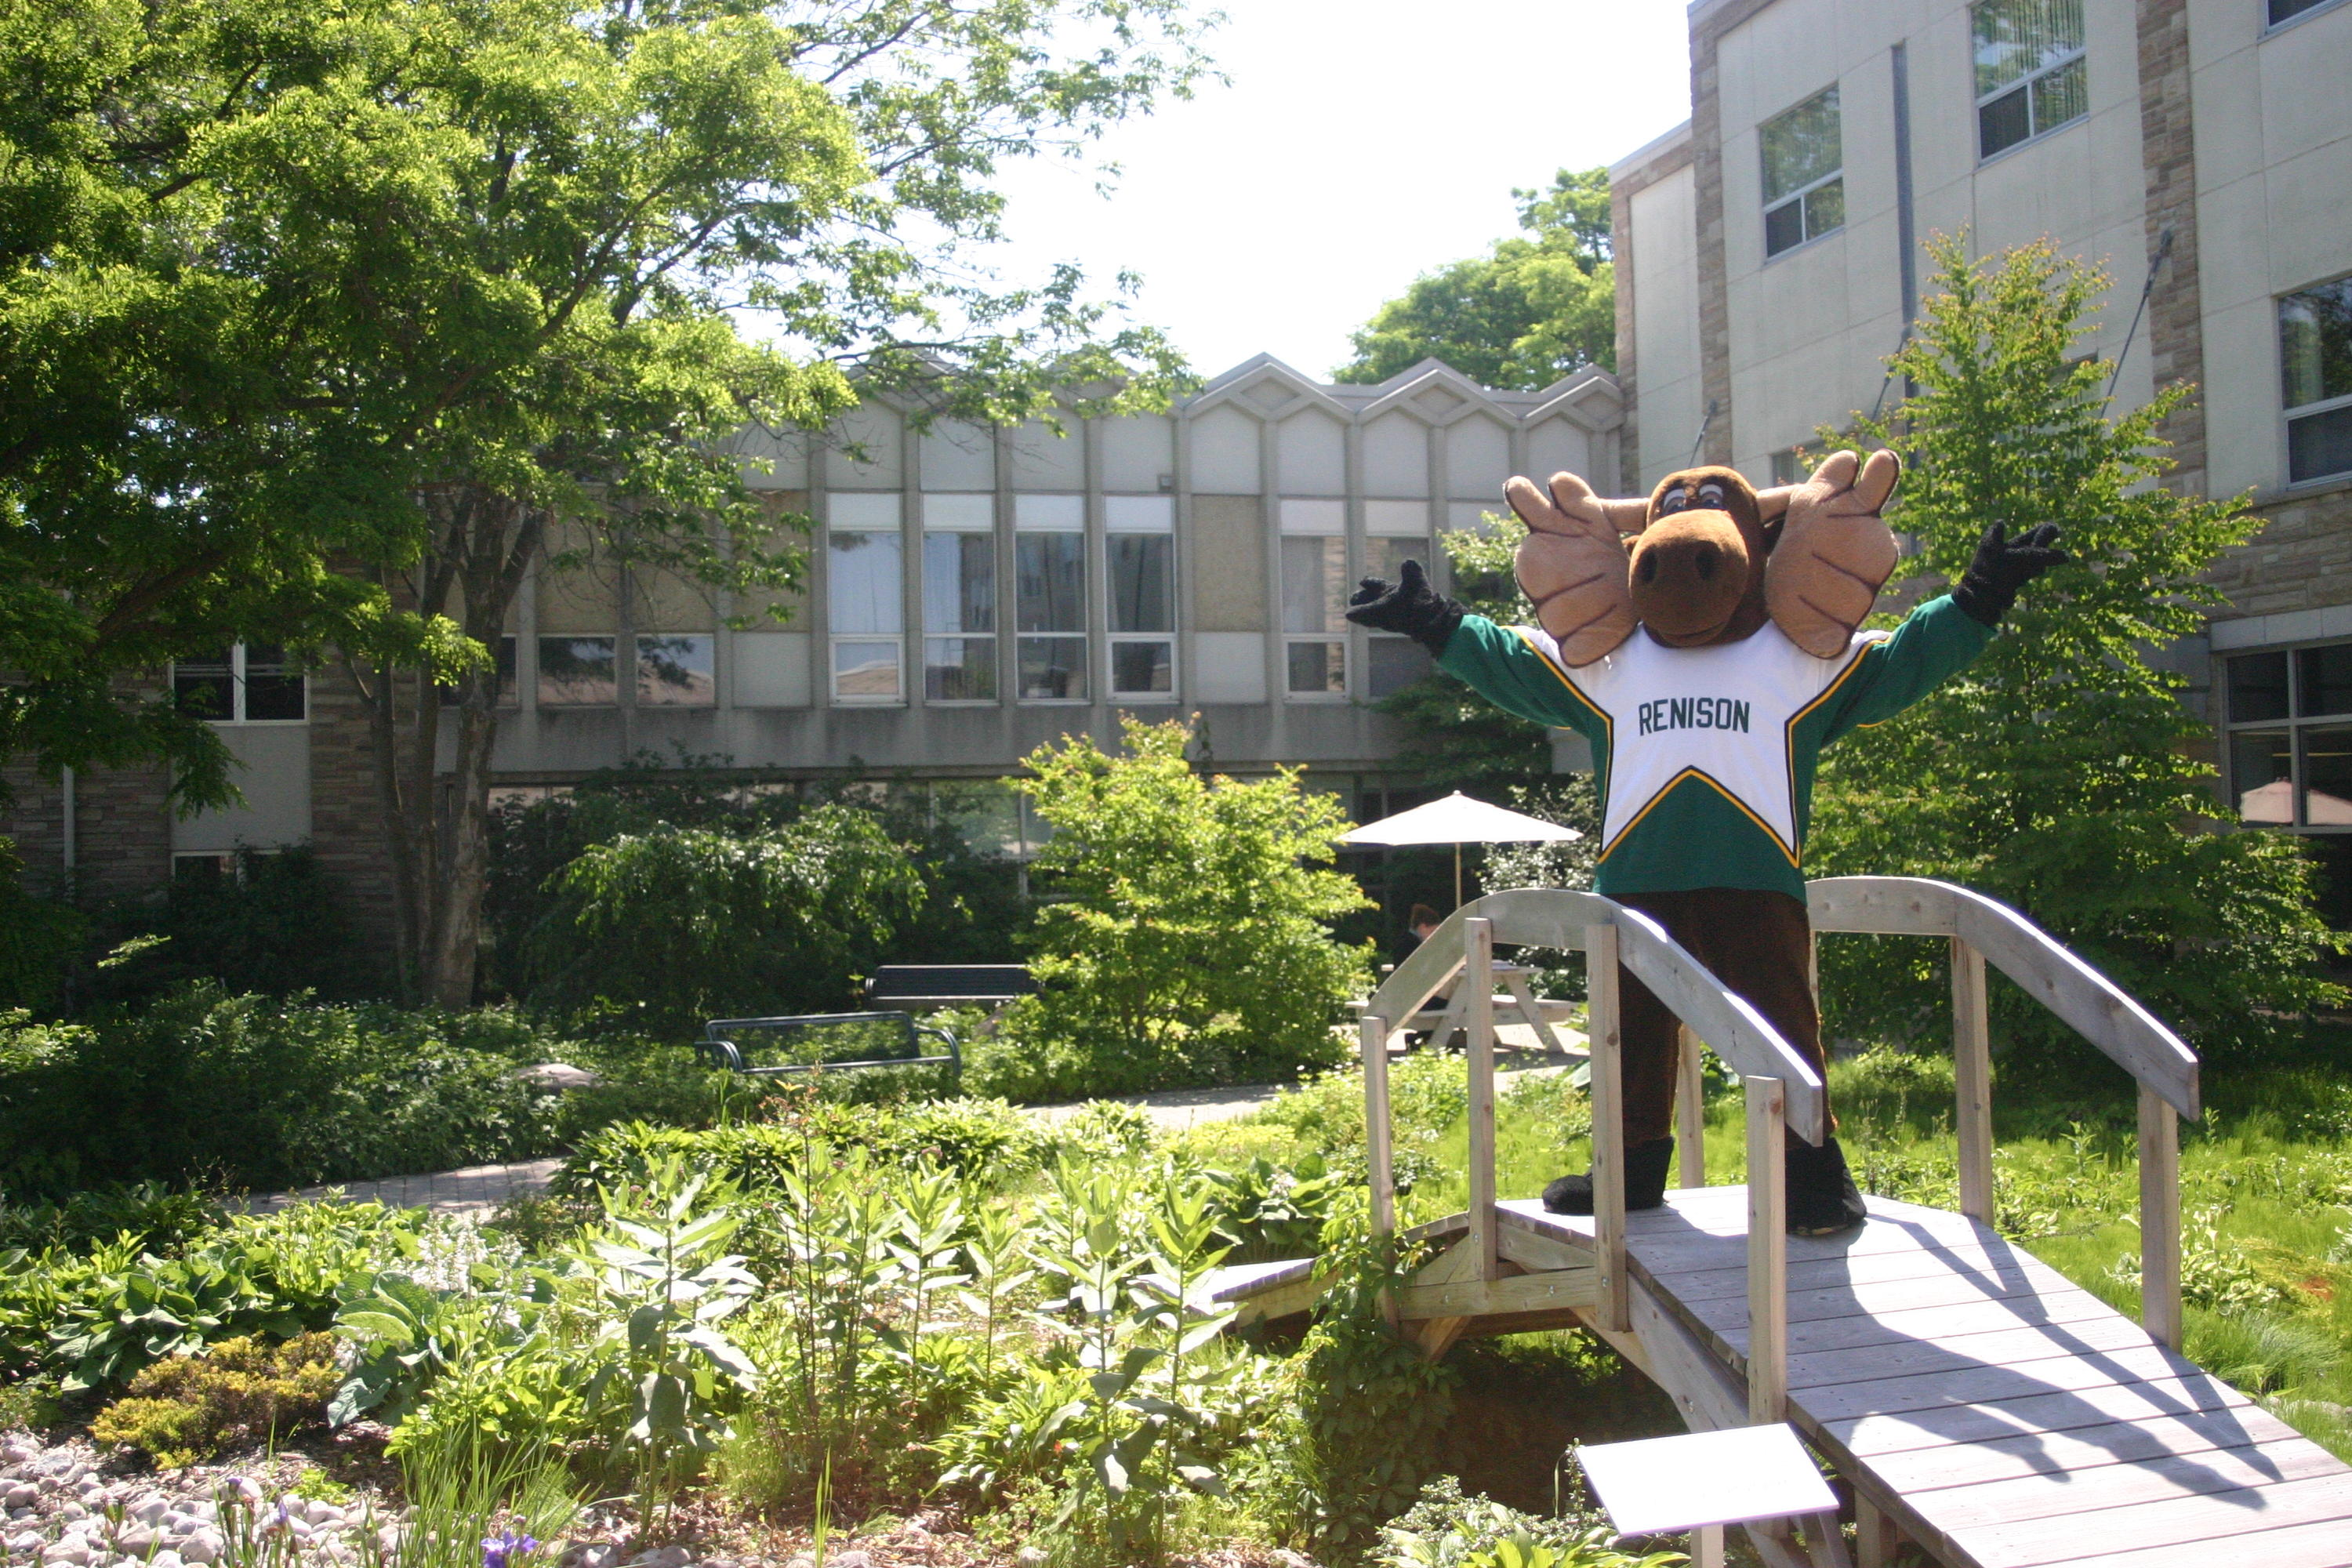 Reni the Moose mascot standing on bridge in Renison courtyard garden